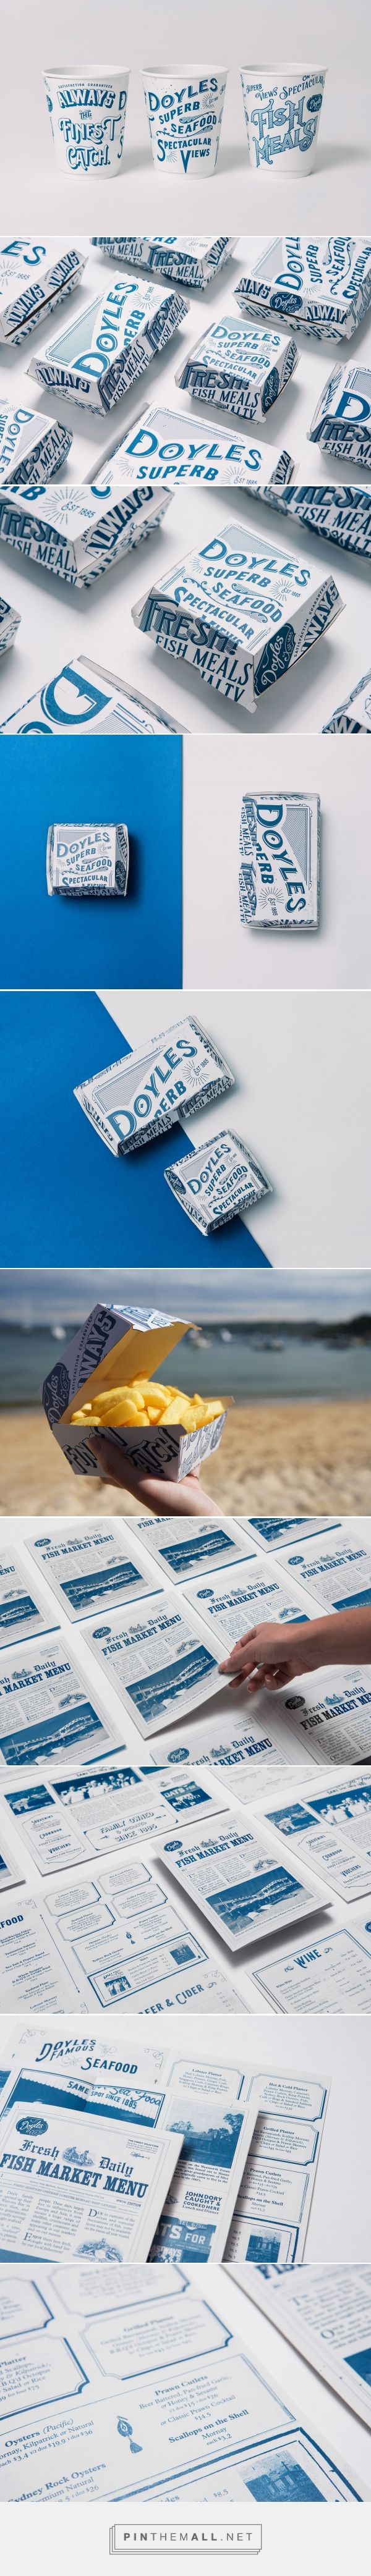 Doyles Seafood Brand Refresh - Packaging of the World - Creative Package Design Gallery - https://www.packagingoftheworld.com/2018/03/doyles-seafood-brand-refresh.html